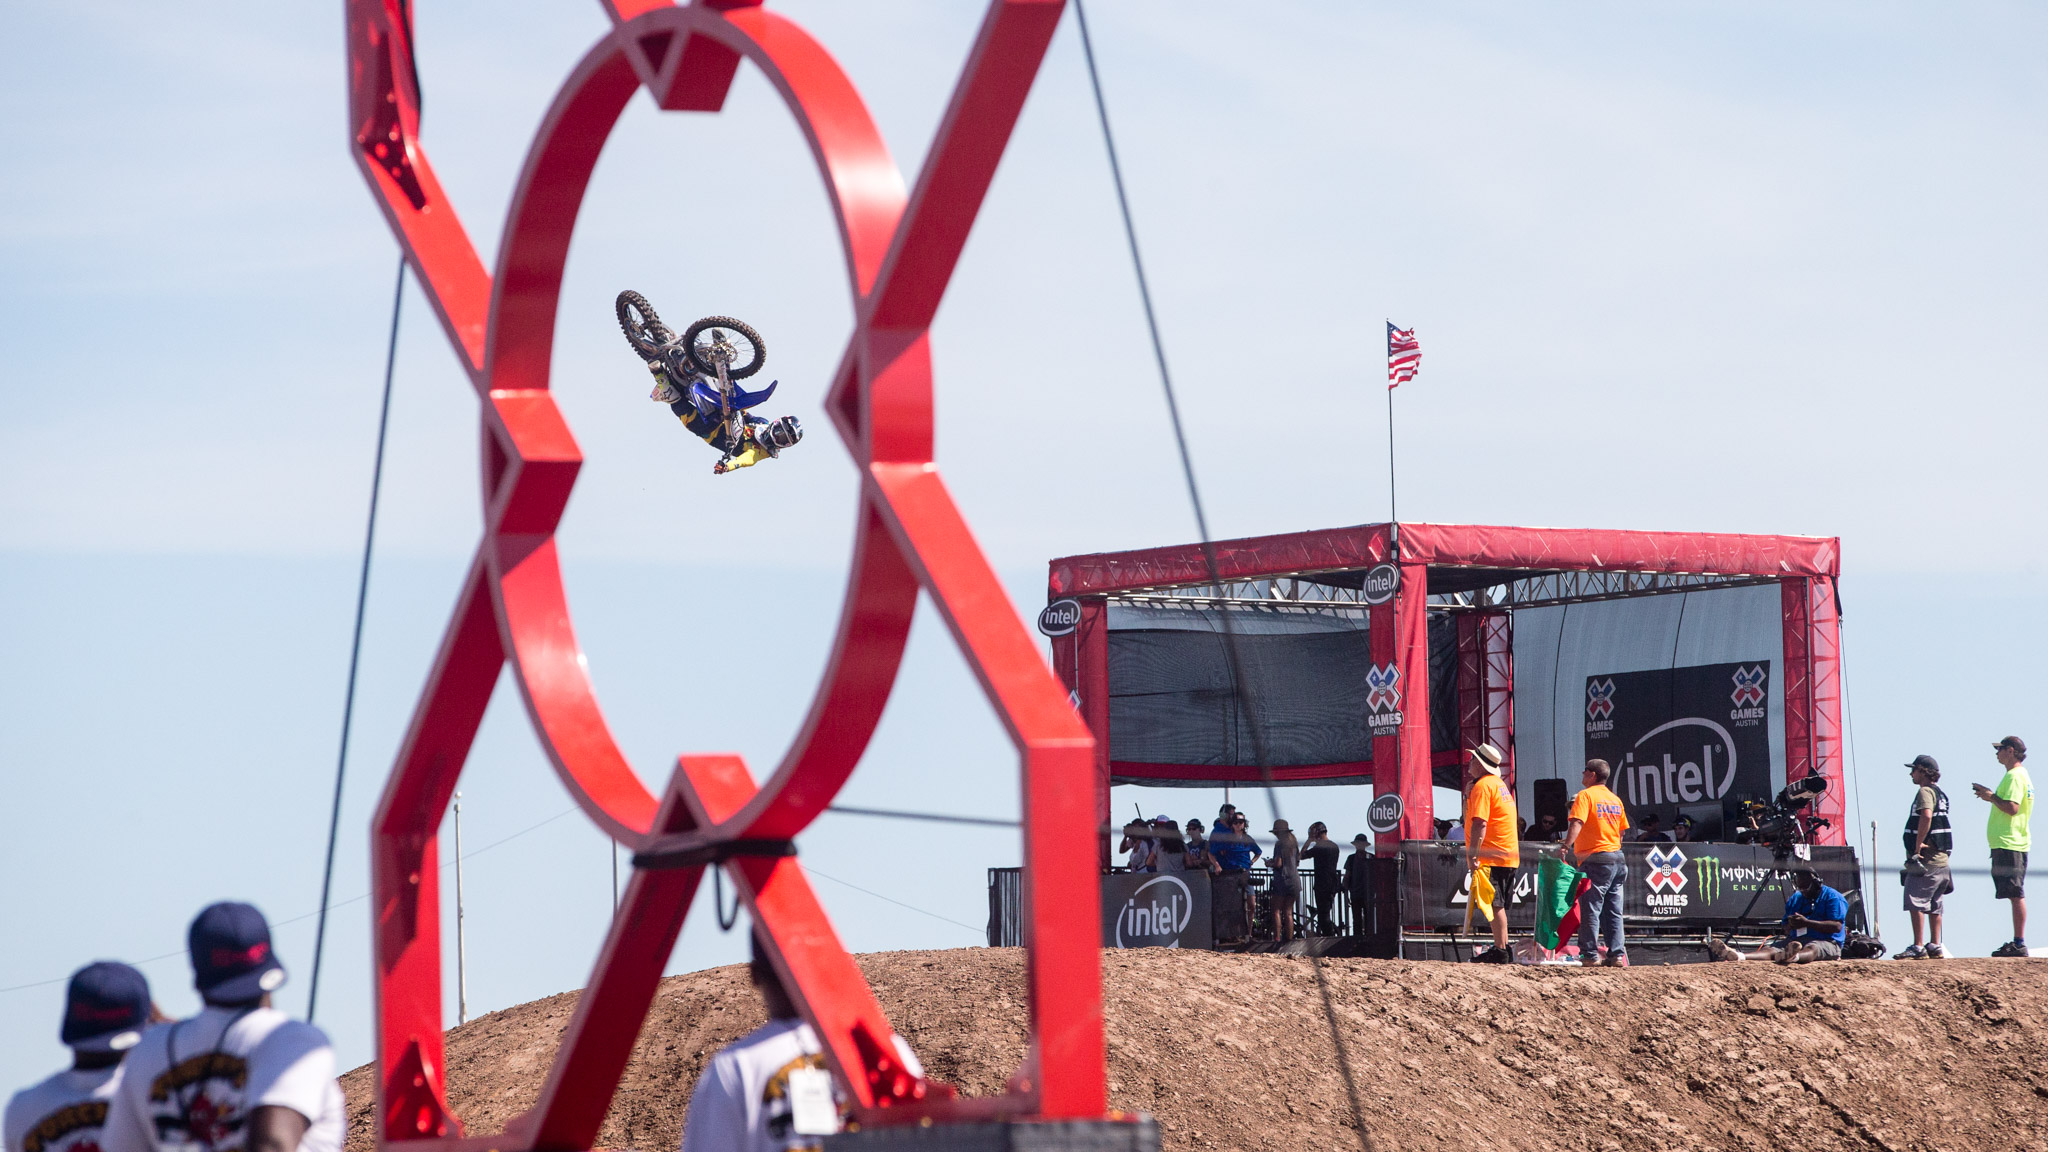 Jarryd McNeil: Moto X Step Up/Best Whip